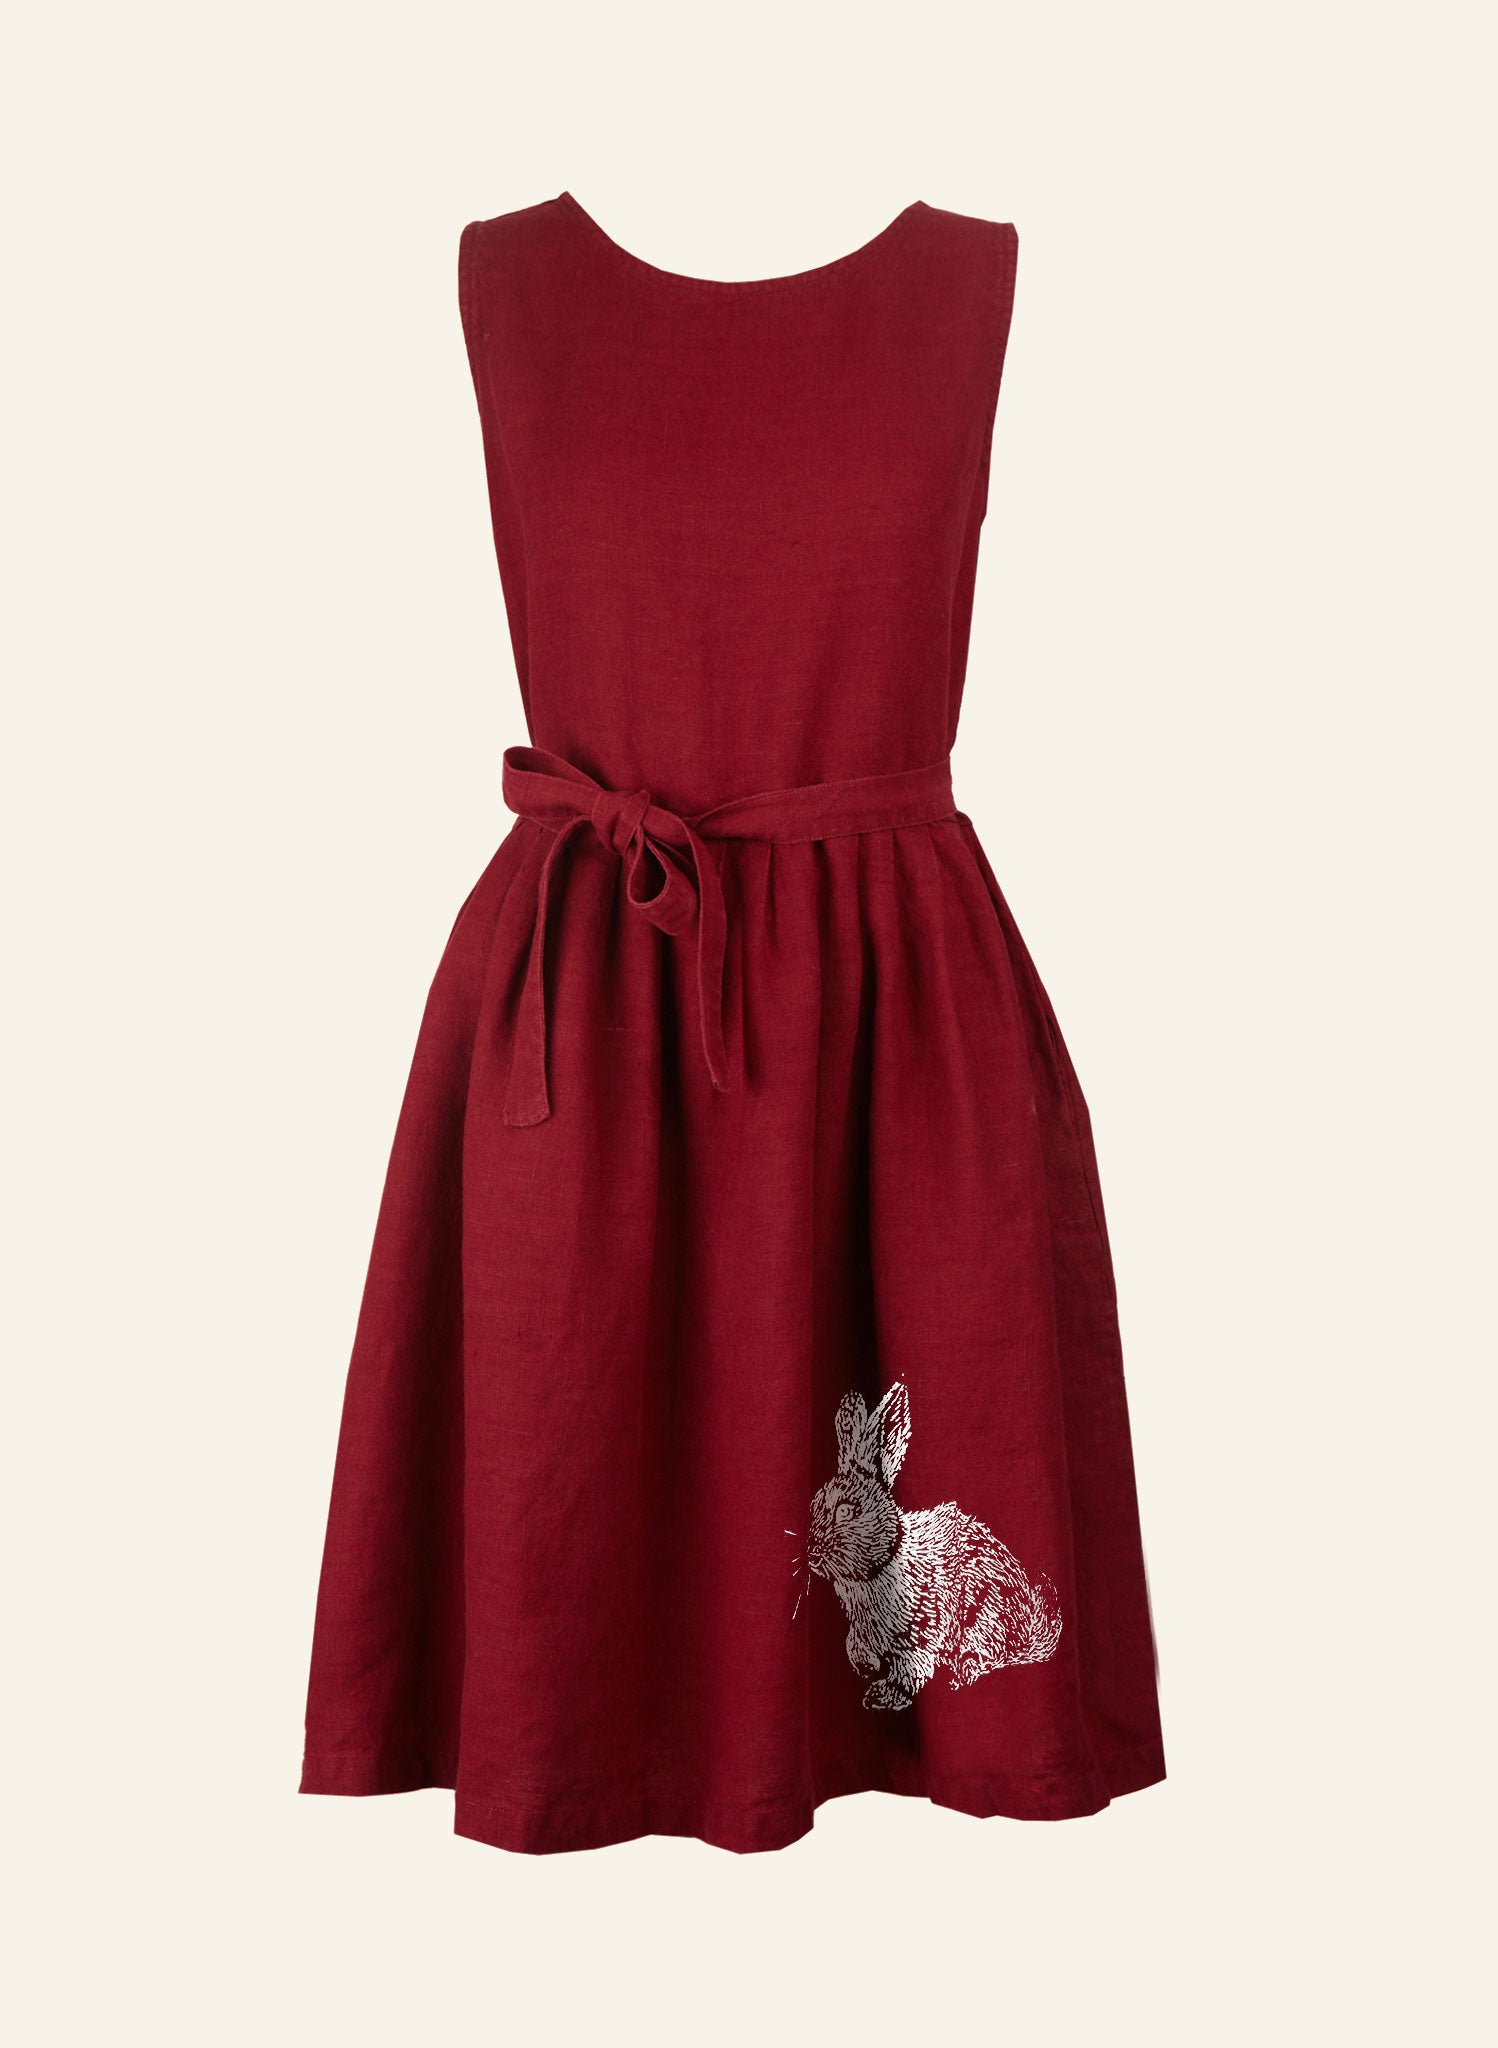 Mabel - Berry Rabbit Dress - 100% Linen